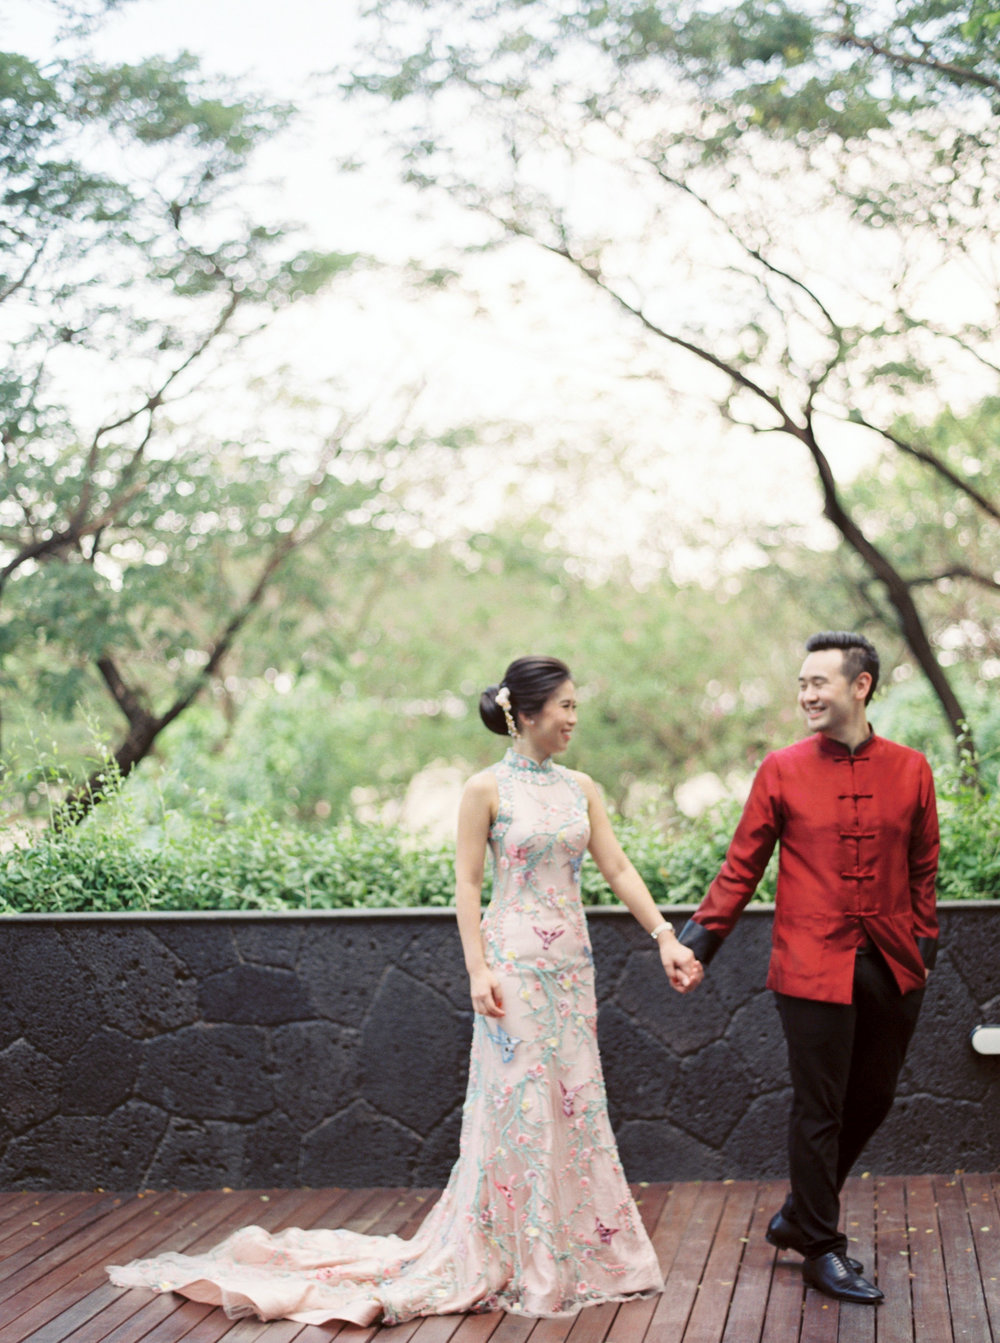 Gerry-Stephanie-Sangjit-Studio June-Film Photography & Styling-Jakarta-196.jpg